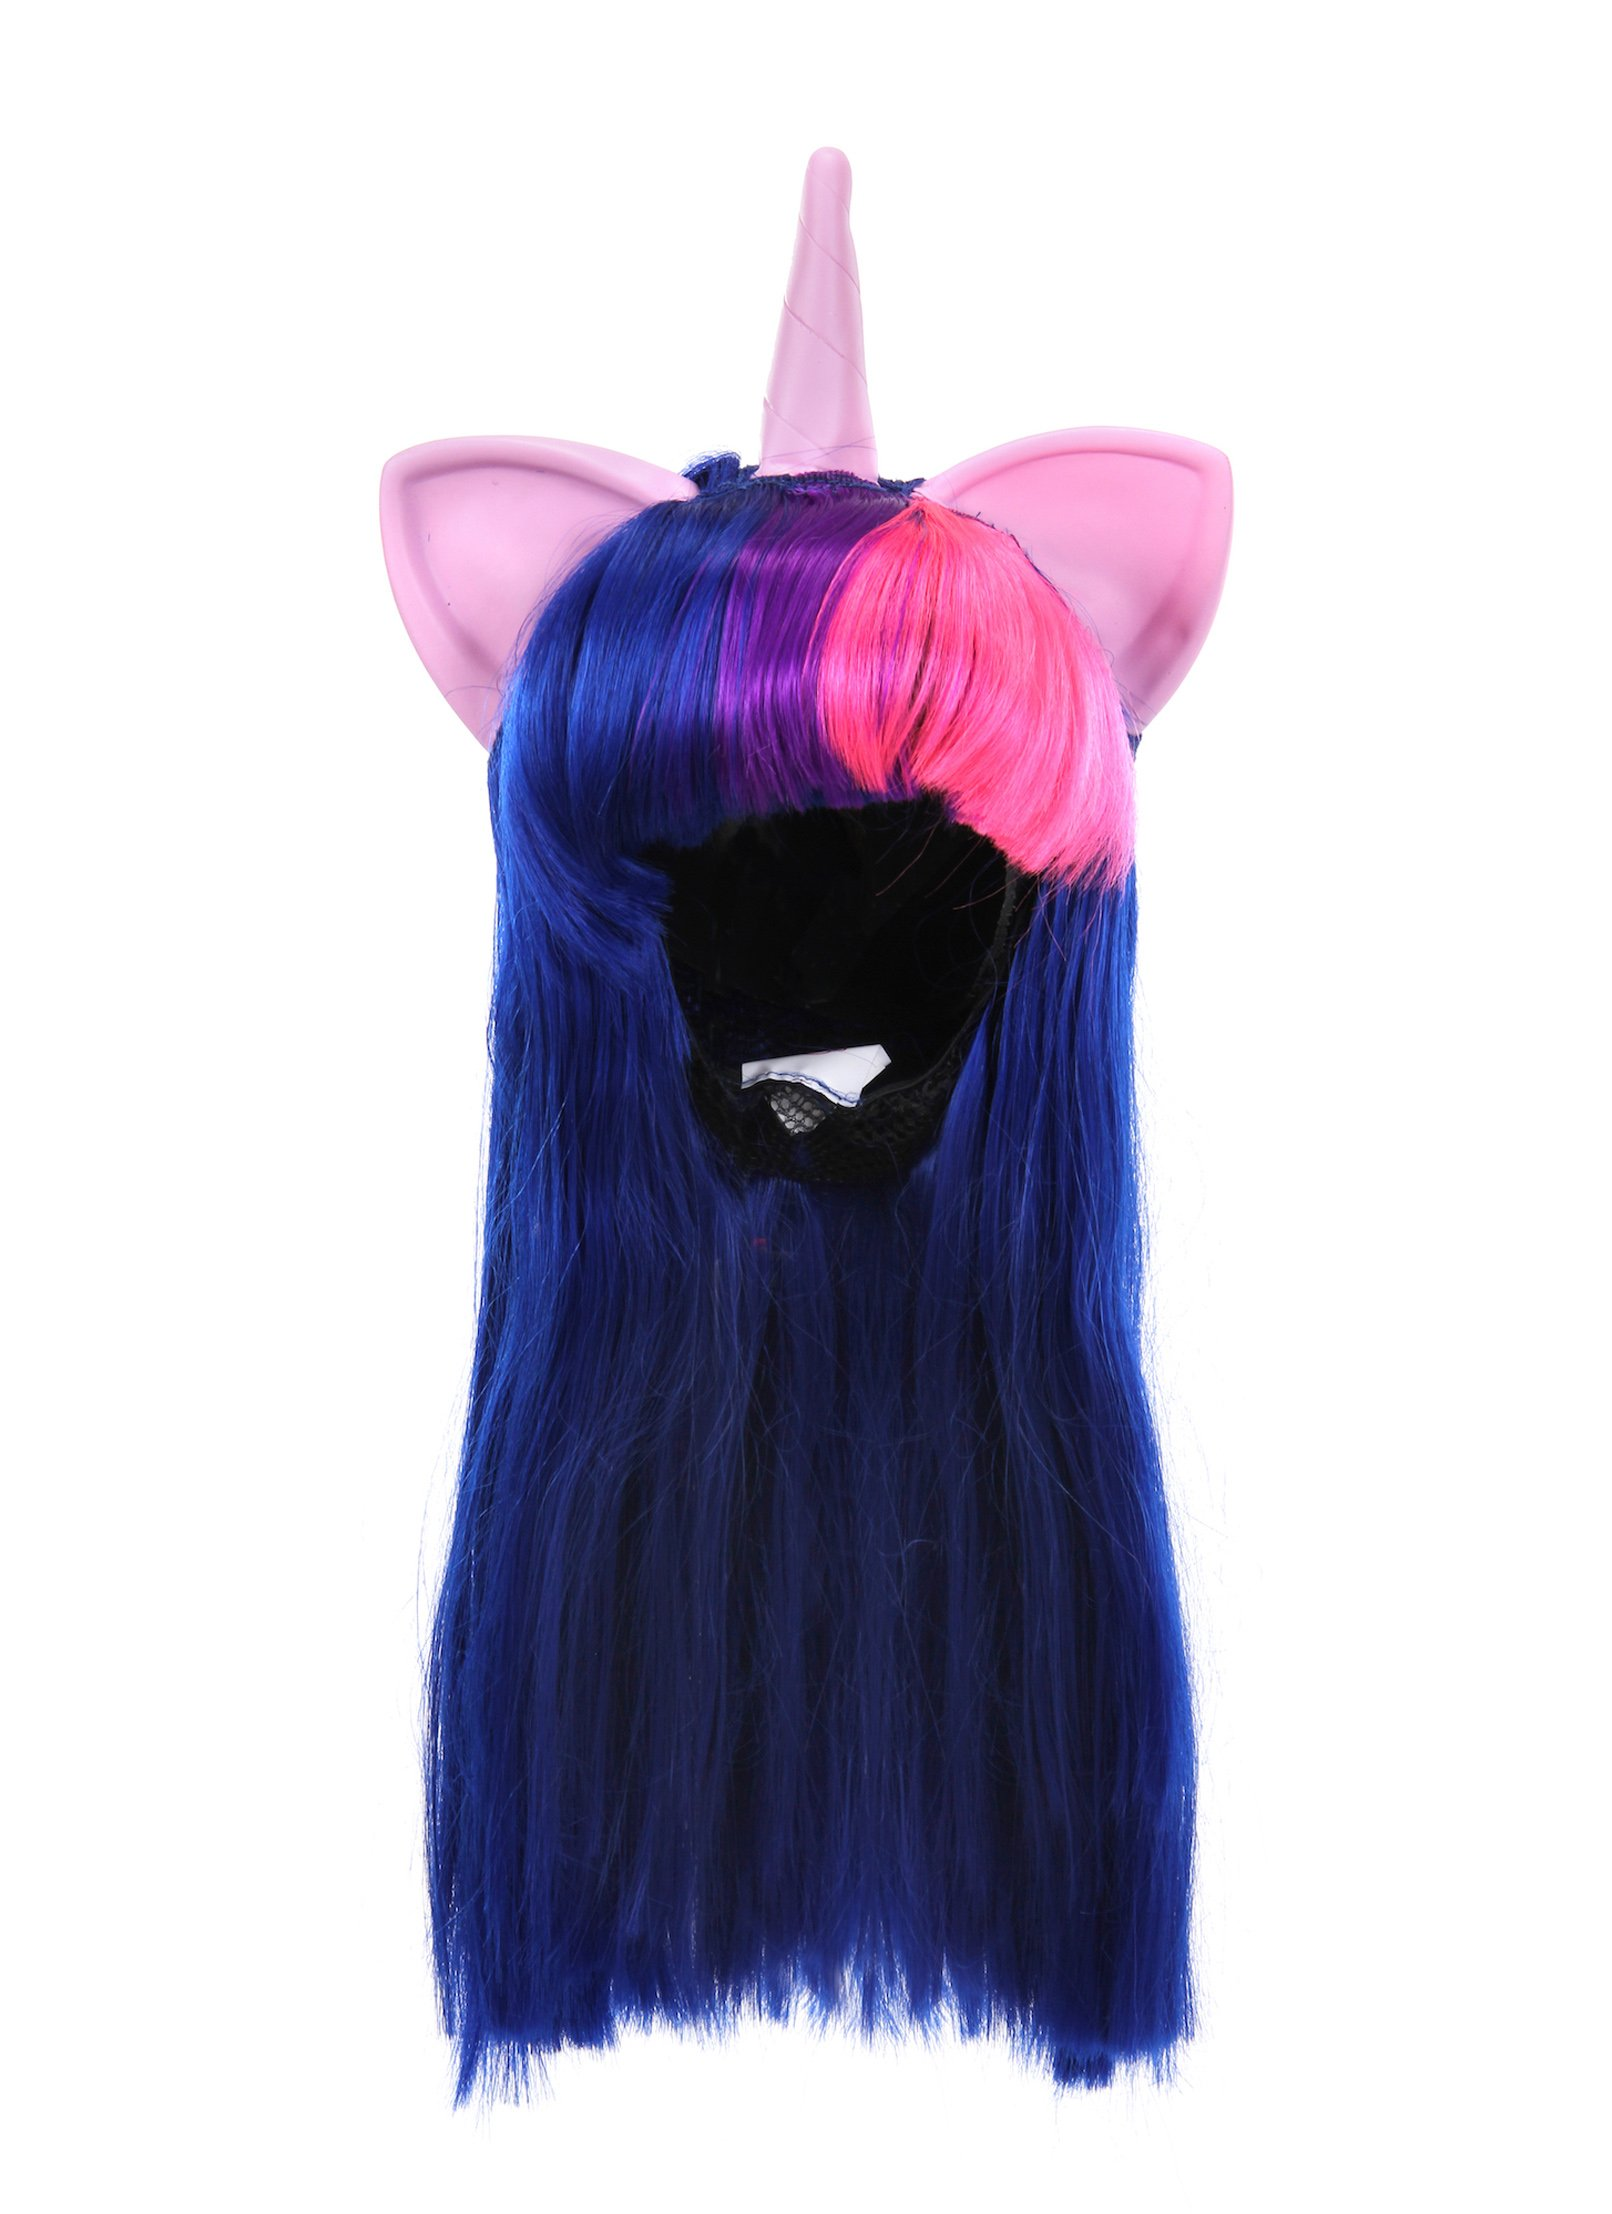 My Little Pony Twilight Sparkle Wig with Ears by elope